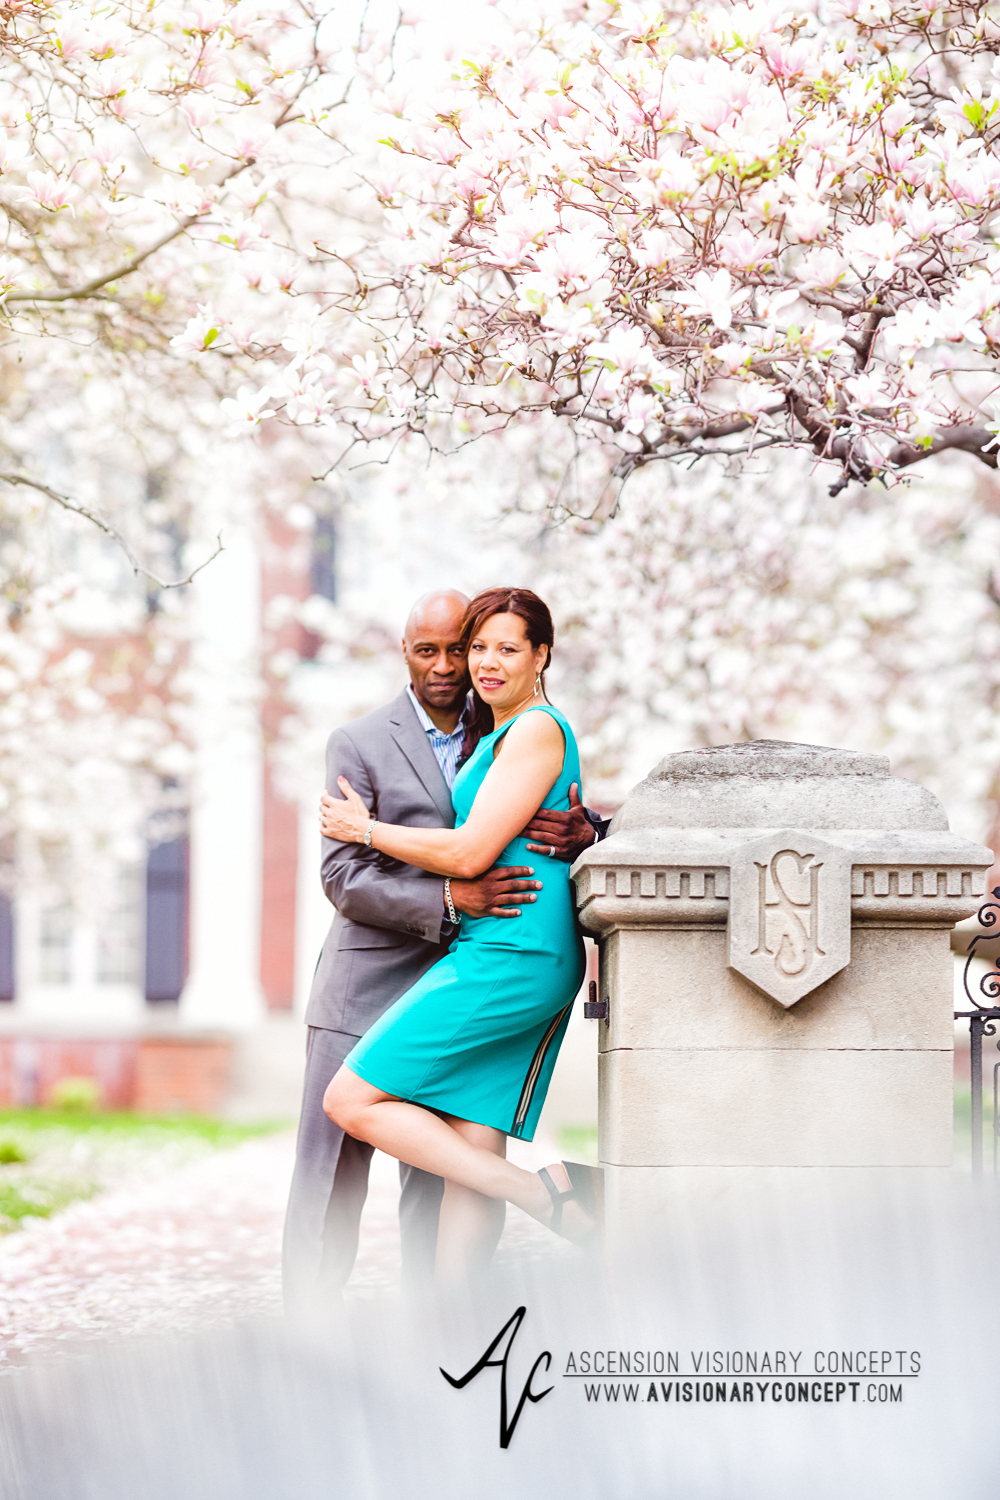 Buffalo Rochester Engagement Photography Spring Photography 001 Magnolia Trees Pink Blooms.jpg